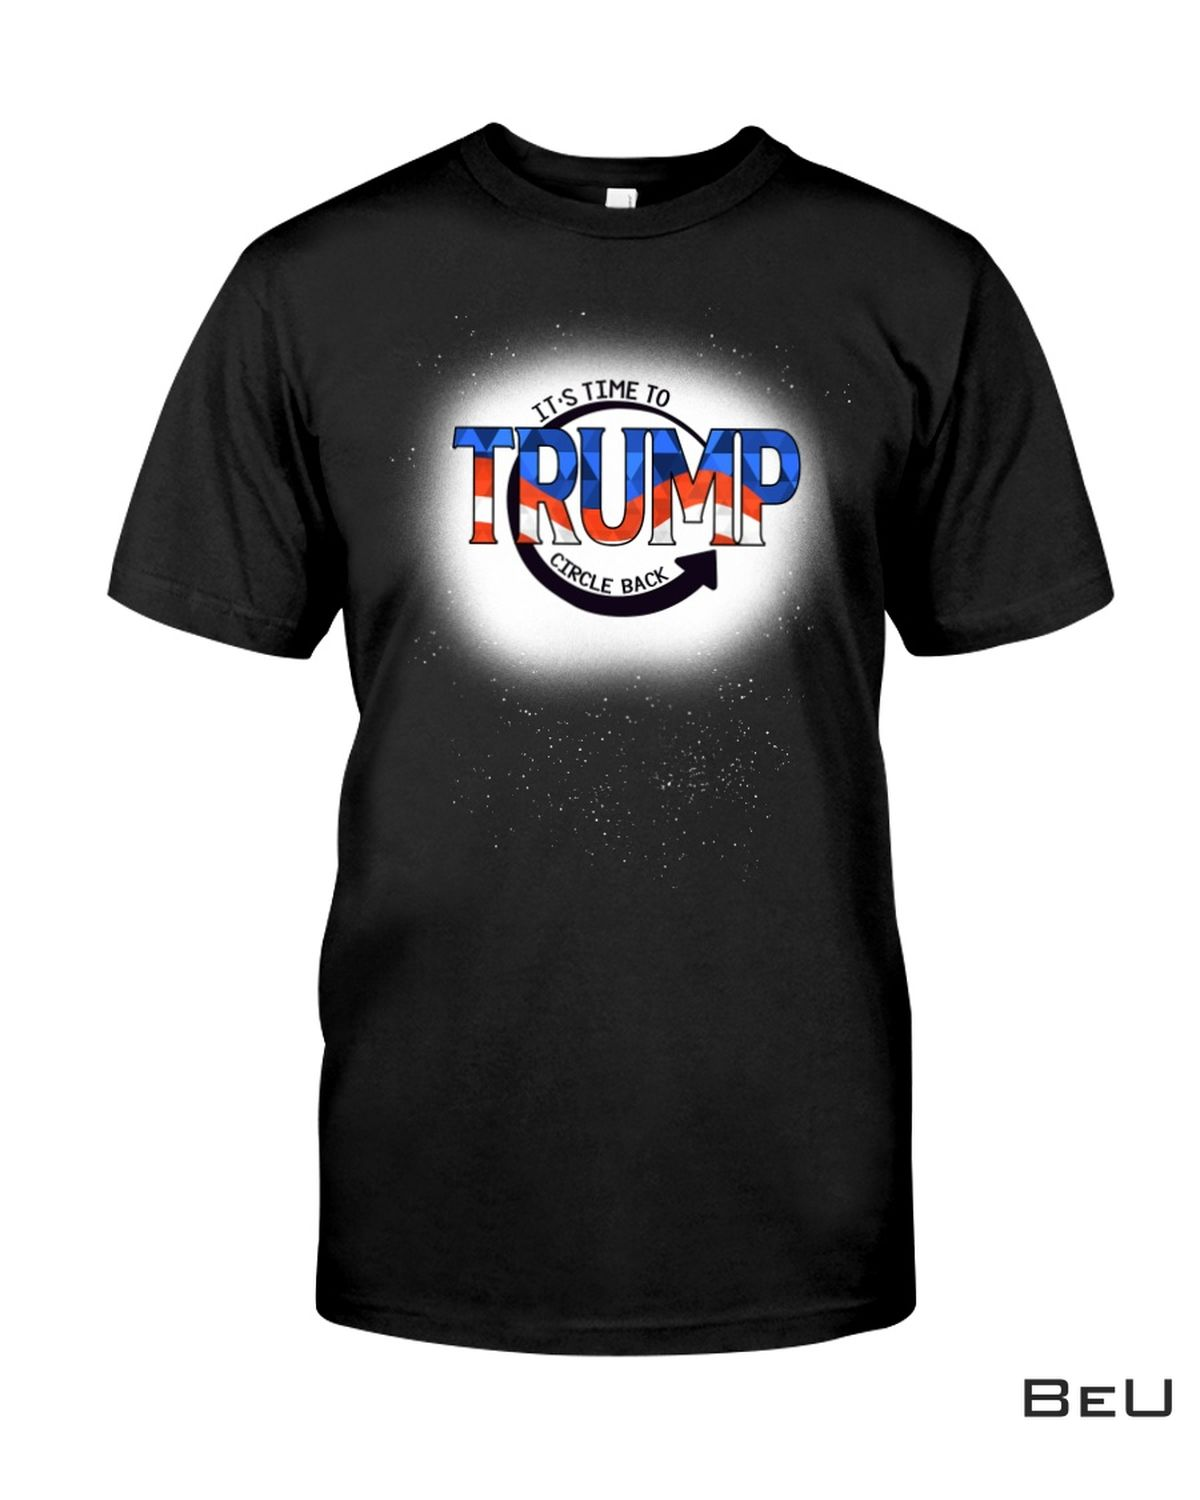 Unique It's Time To Trump Circle Back Shirt, hoodie